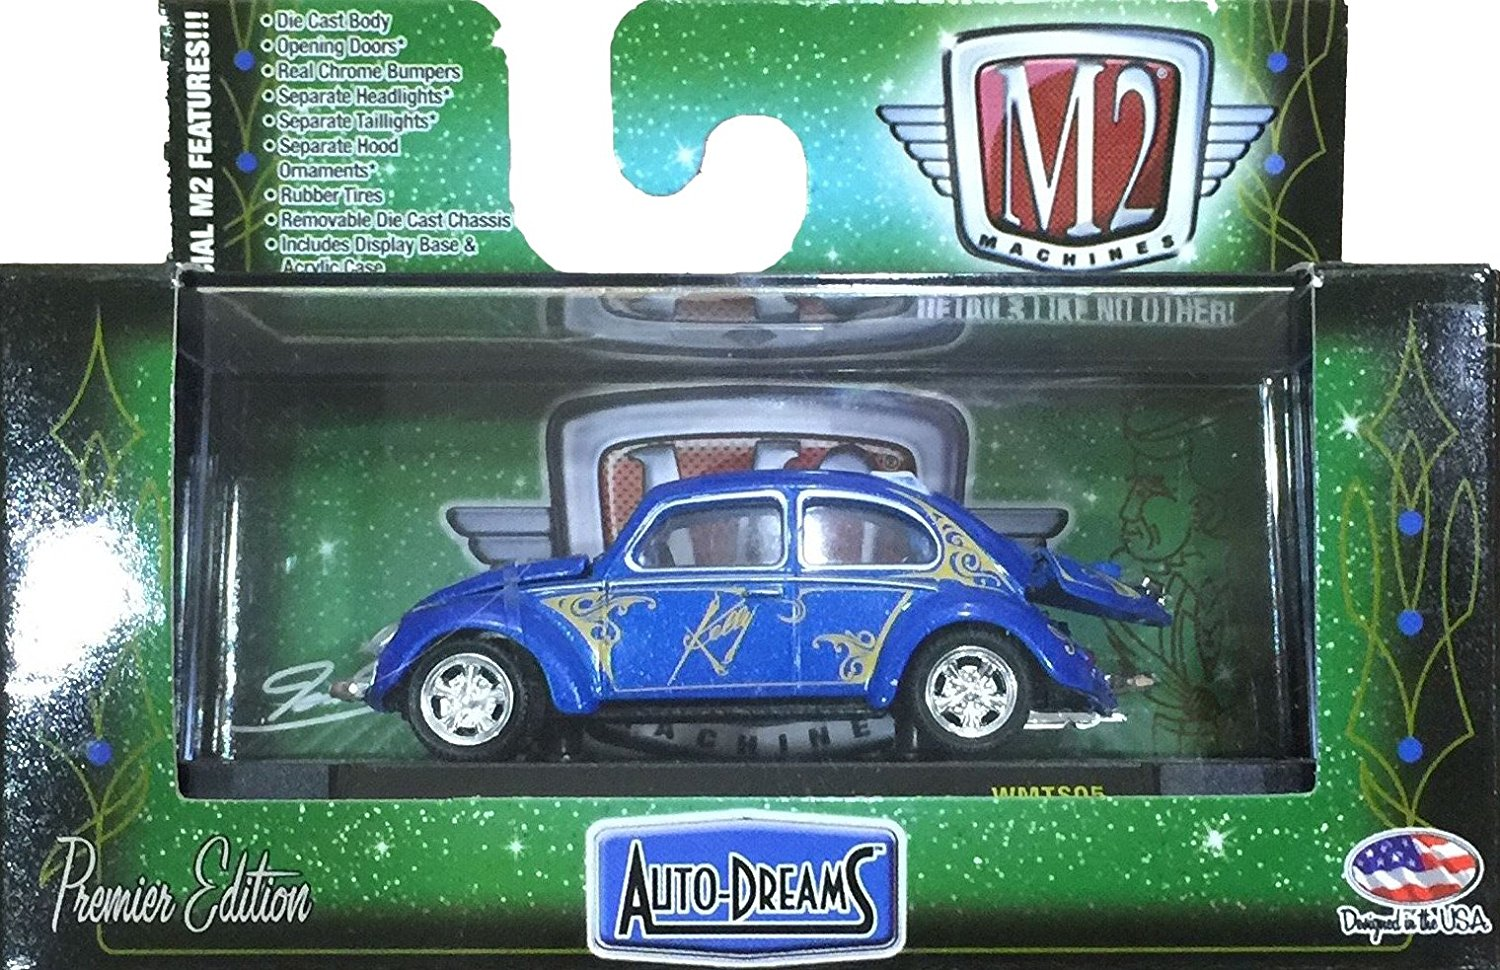 M2 Machines by M2 Collectible Moon 1953 VW Beetle Deluxe U.S.A Model 1:64 Scale MOON02 18-45 Yellow Details Like NO Other 1 of 7200